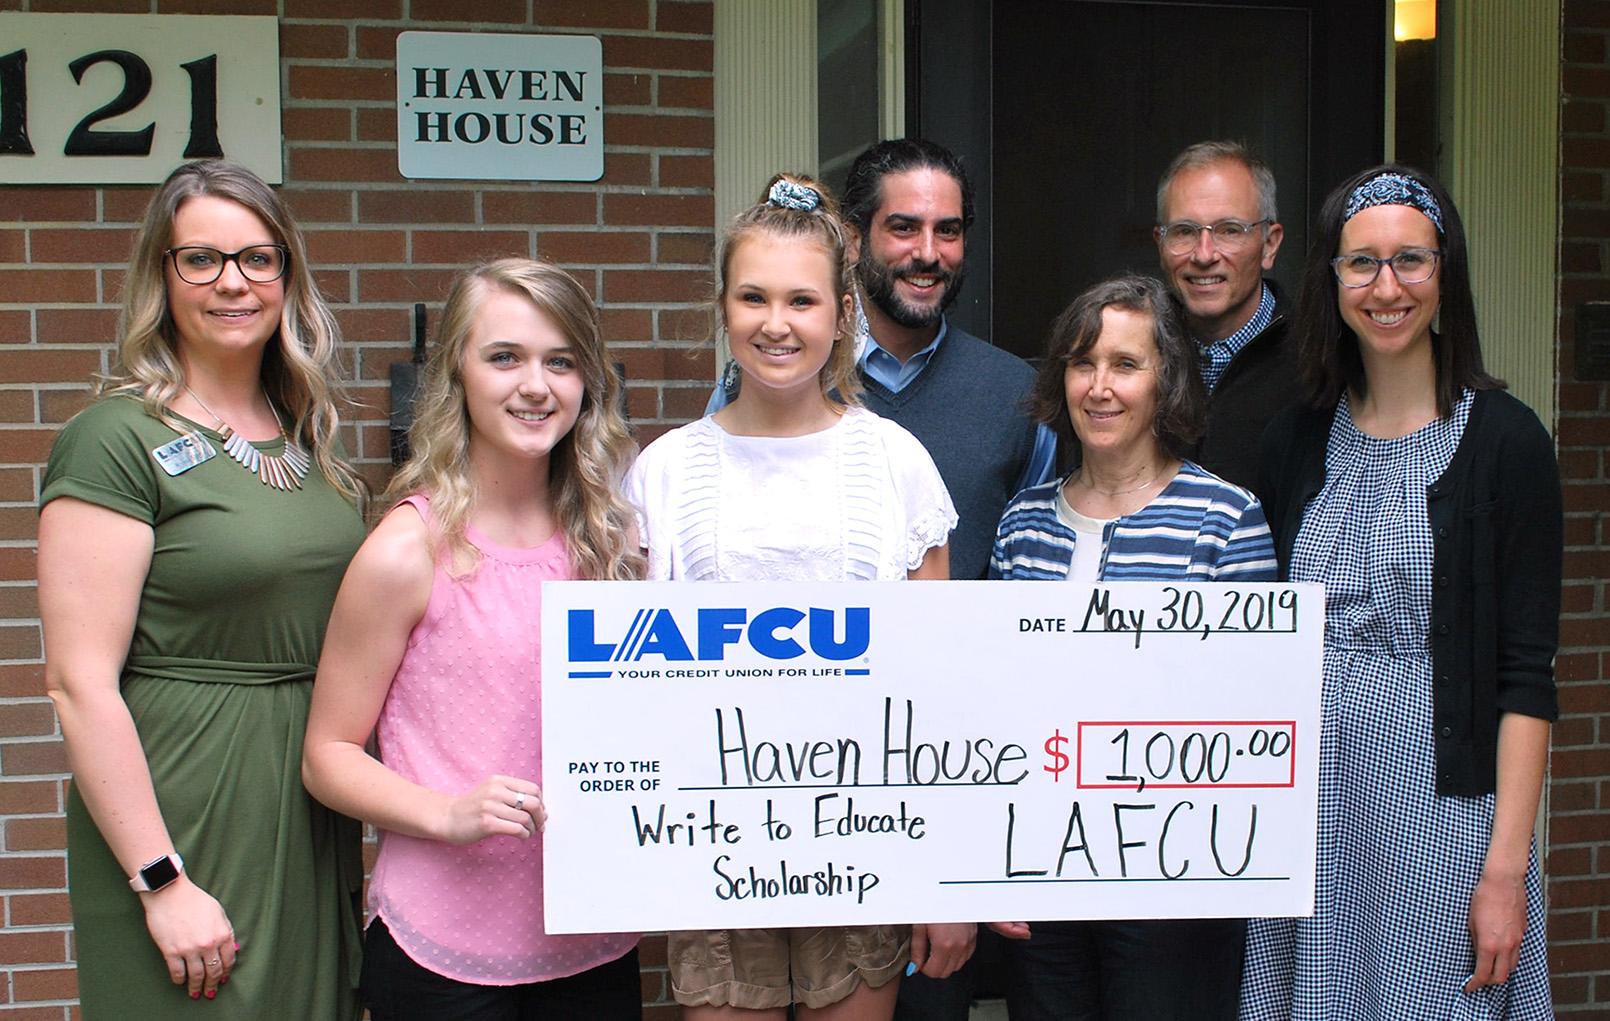 From left, LAFCU's Alyssa Sliger and winners of the 2019 Write to Educate Essay Contest, Julia Pate and Daisy Manzer, present LAFCU's charity donation to Haven House representatives: Gabriel Biber, executive director; Stacy Hickox , board president; Chris DeRose, board member; and Molly Cook, development director.